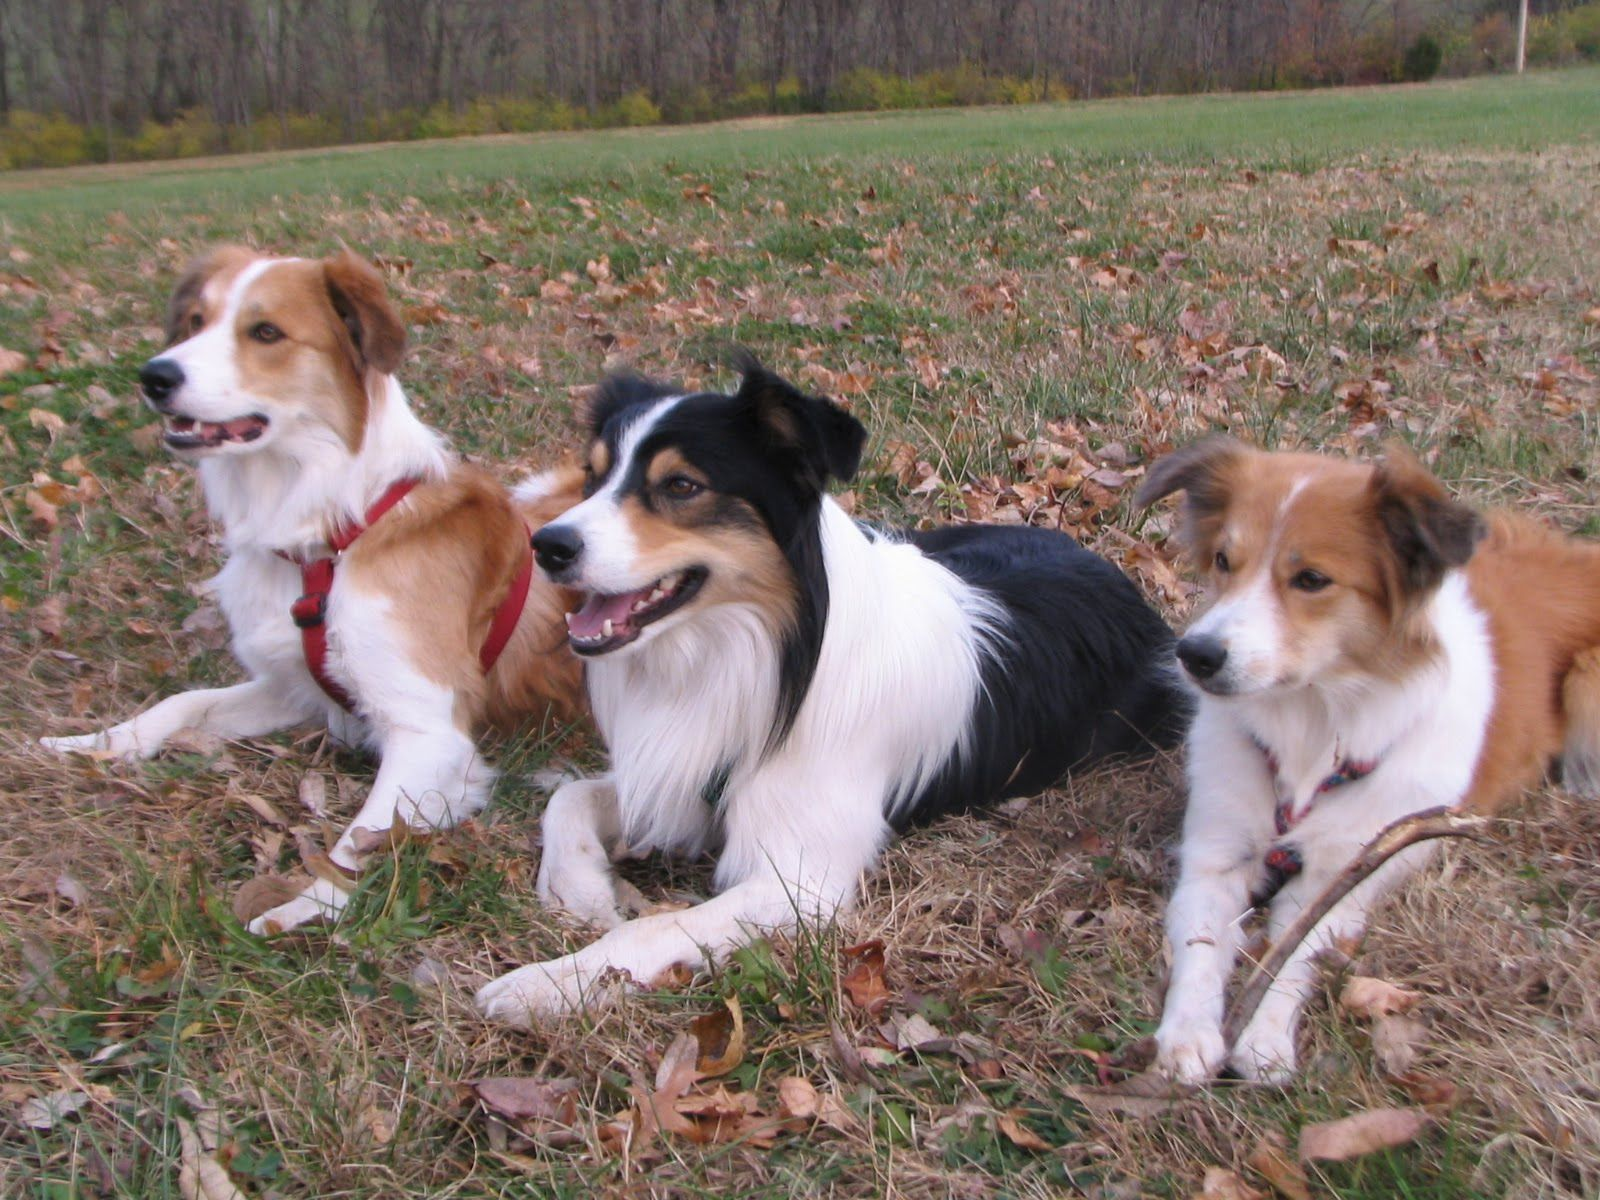 Welsh Sheepdog Photo Zio The Border Collie Purina Farms Pics Welsh Sheepdog Silly Dogs Pet Dogs